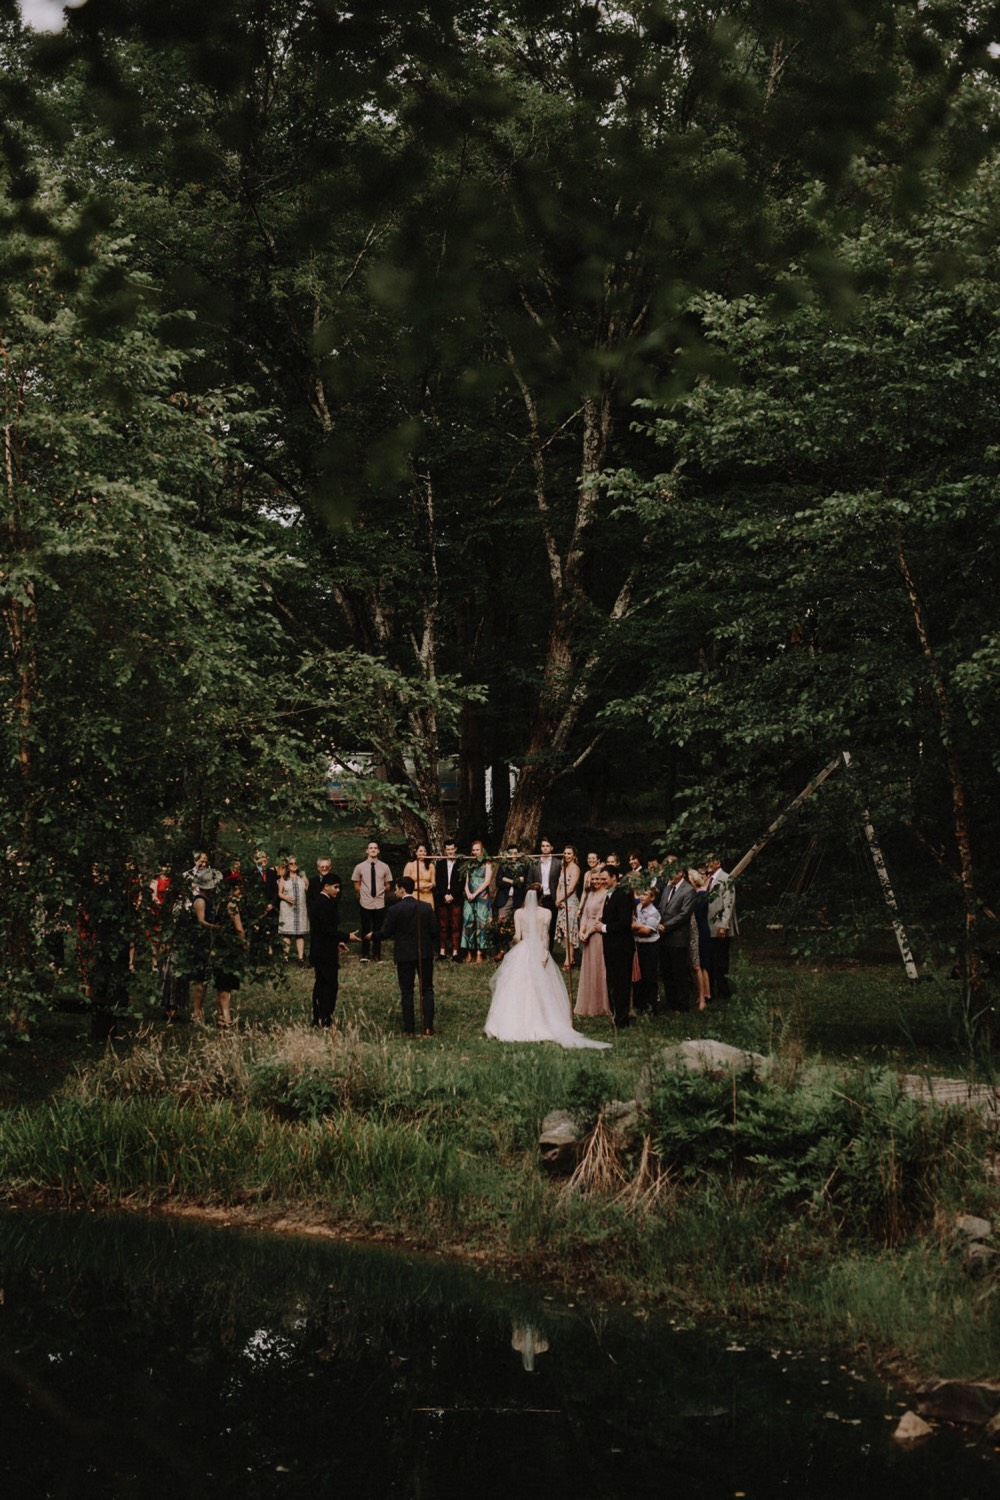 Woodstock New York Backyard Wedding0098.jpg